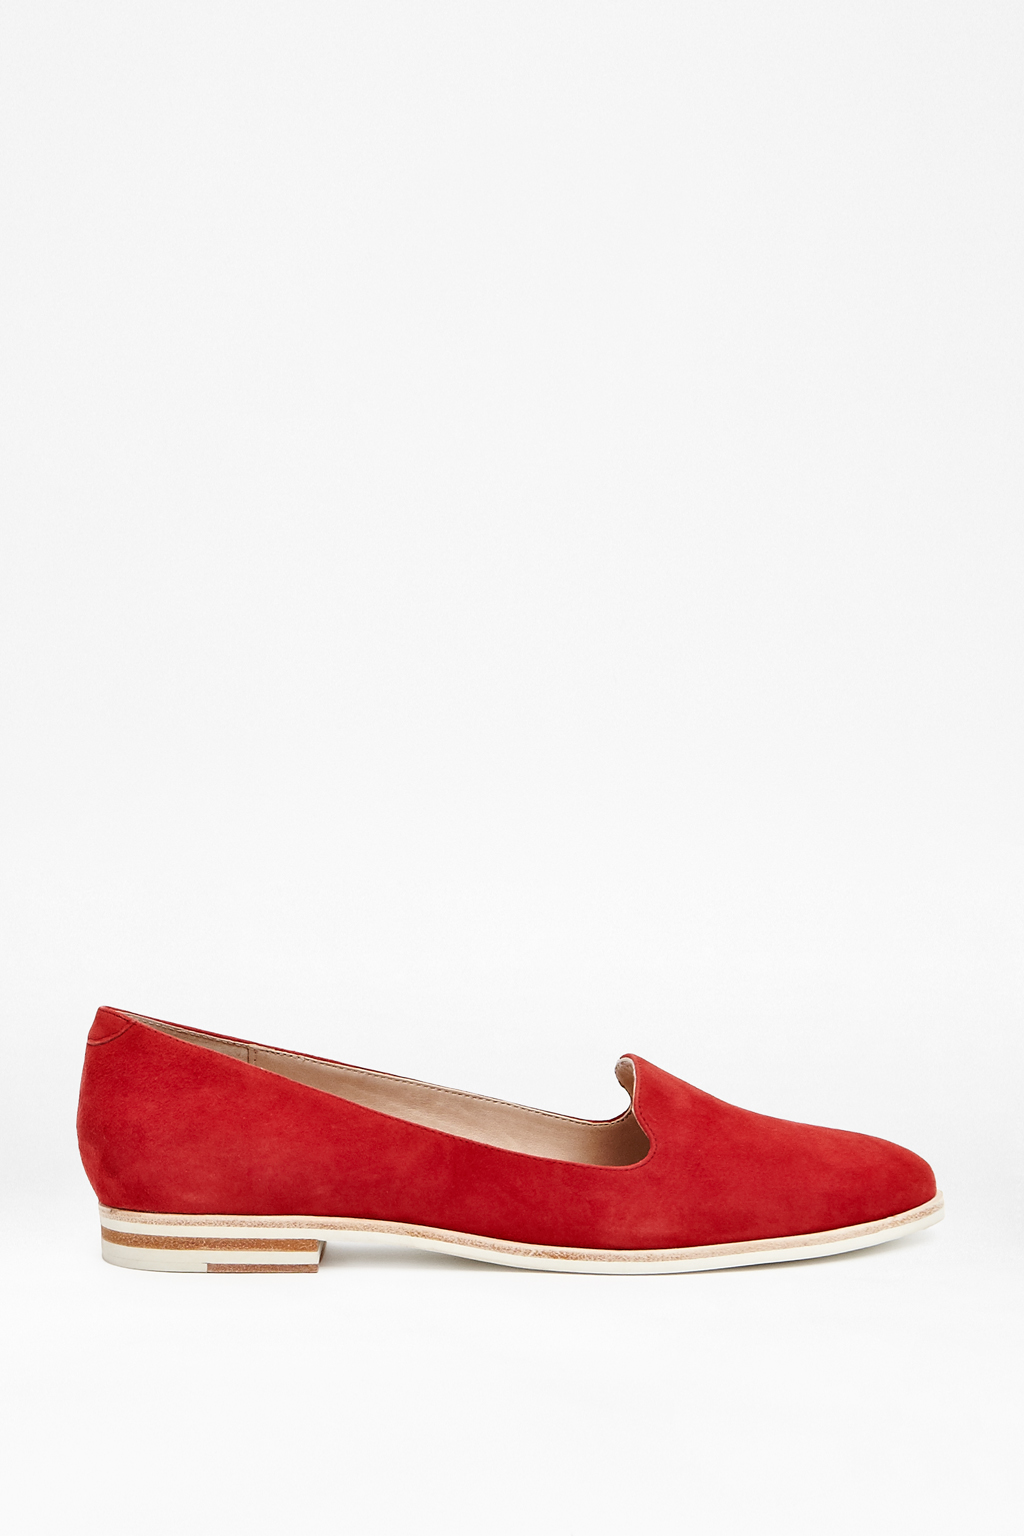 Red Damini Suede Moccasin Shoe